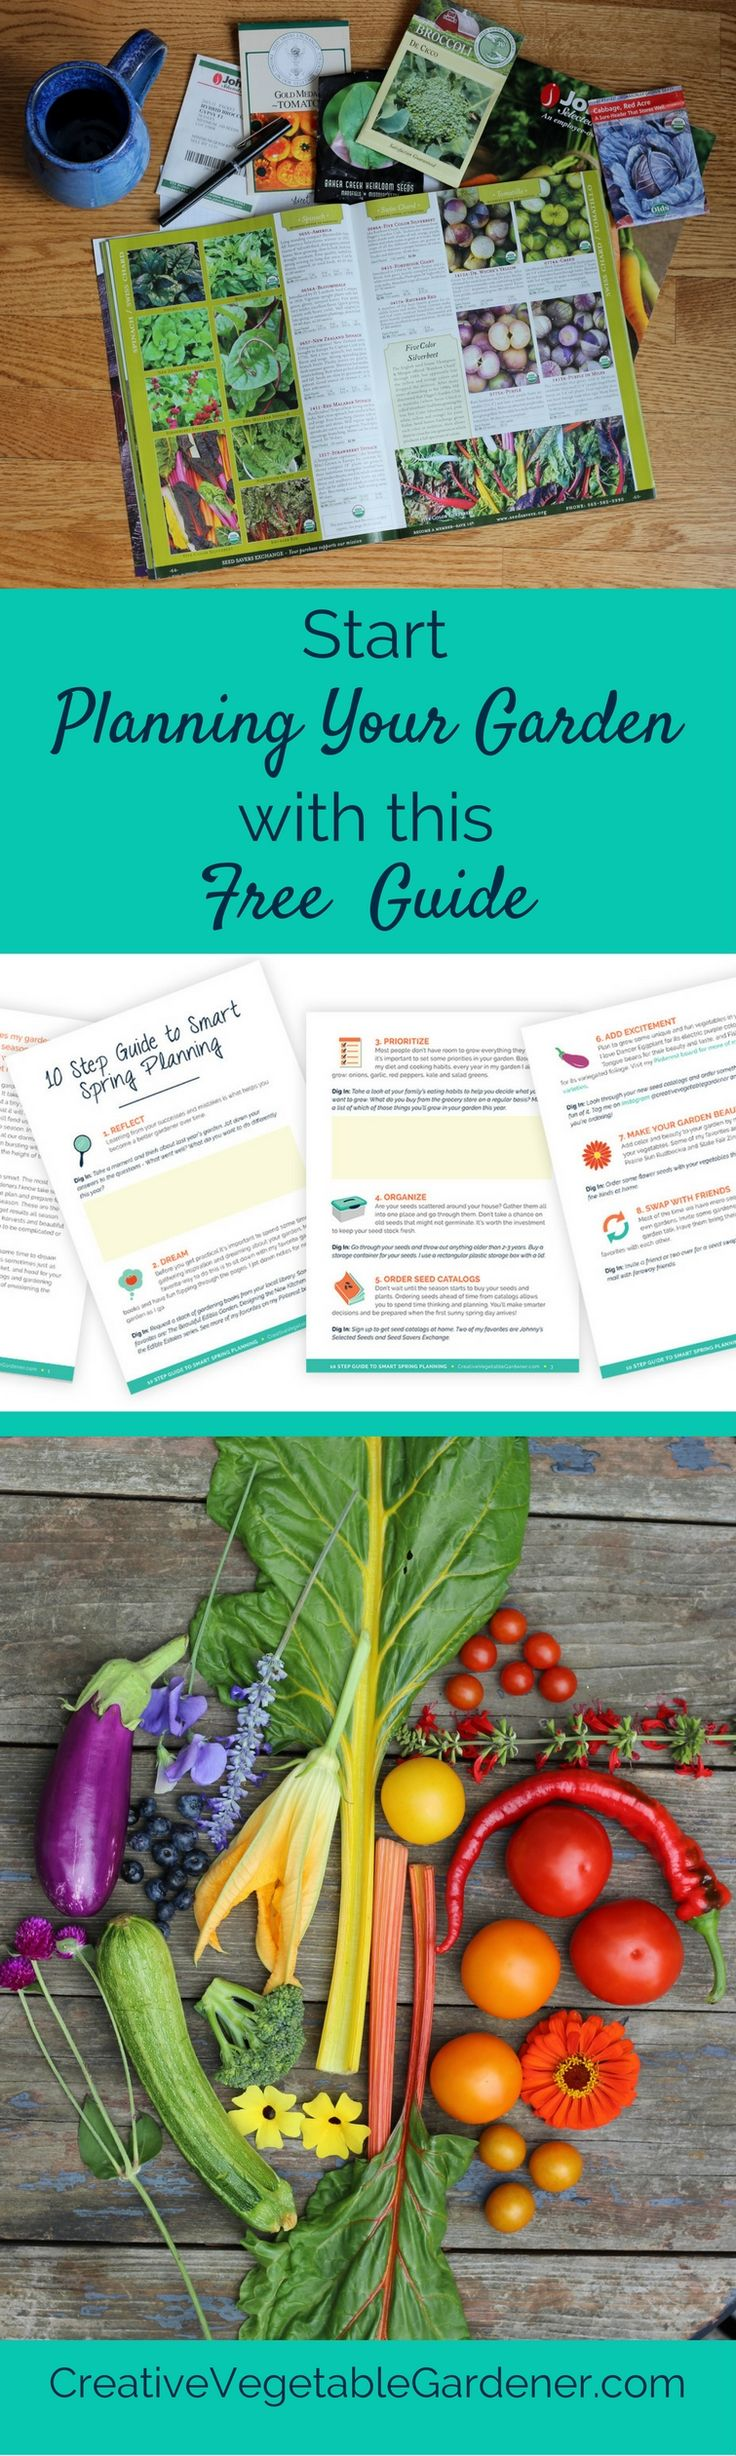 A amazing garden starts with some simple winter planning. Get your free 10 step guide to smart planning for spring.